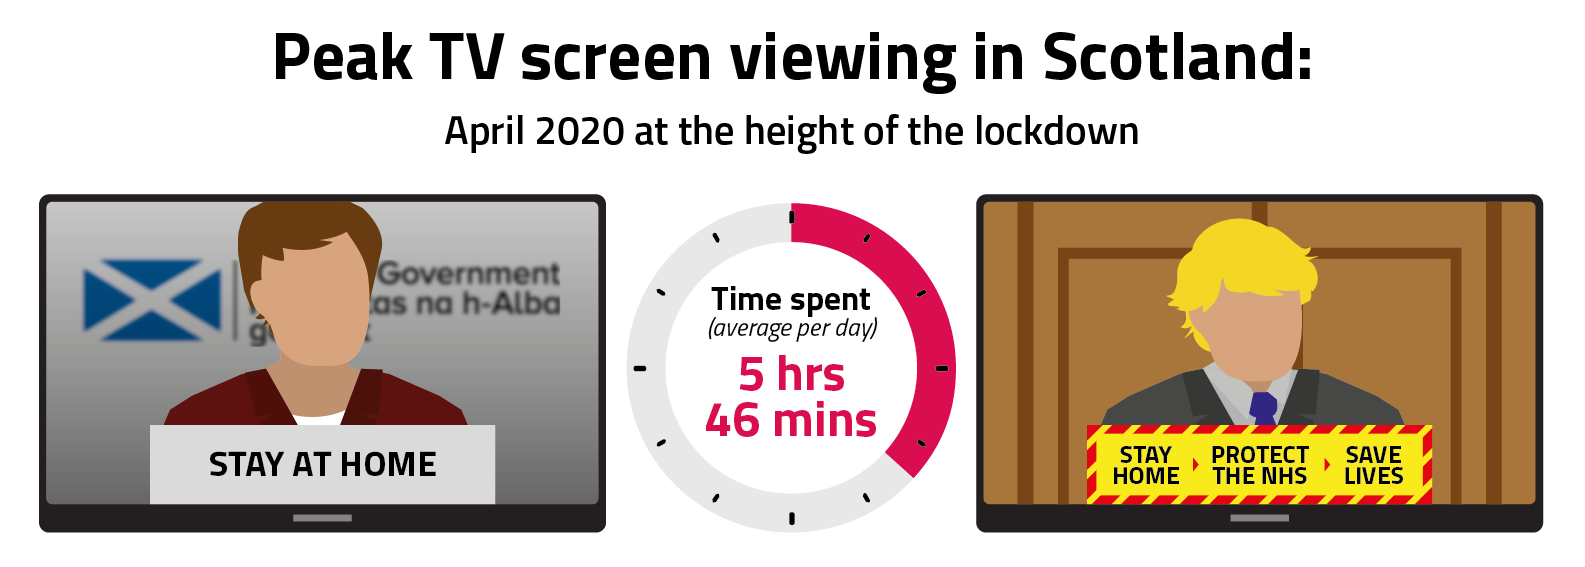 In April 2020, people in Scotland spent an average of 5 hours and 46 minutes viewing across all devices.